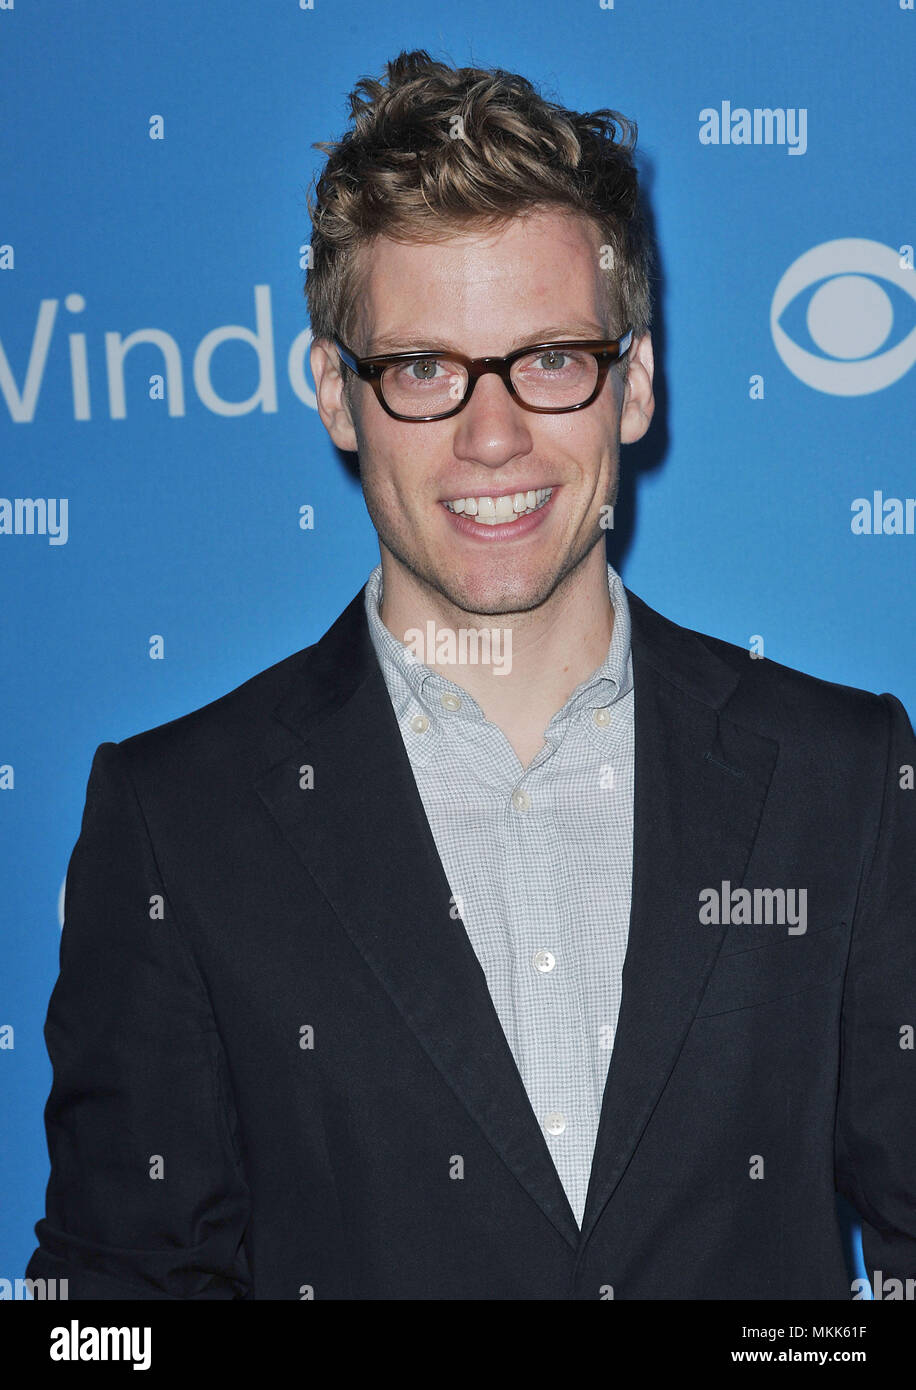 Barrett Foa  at the CBS 2012 Fall Premiere Party at the Greystone Manor In Los Angeles.Barrett Foa  Red Carpet Event, Vertical, USA, Film Industry, Celebrities,  Photography, Bestof, Arts Culture and Entertainment, Topix Celebrities fashion /  Vertical, Best of, Event in Hollywood Life - California,  Red Carpet and backstage, USA, Film Industry, Celebrities,  movie celebrities, TV celebrities, Music celebrities, Photography, Bestof, Arts Culture and Entertainment,  Topix, headshot, vertical, one person,, from the year , 2012, inquiry tsuni@Gamma-USA.com - Stock Image